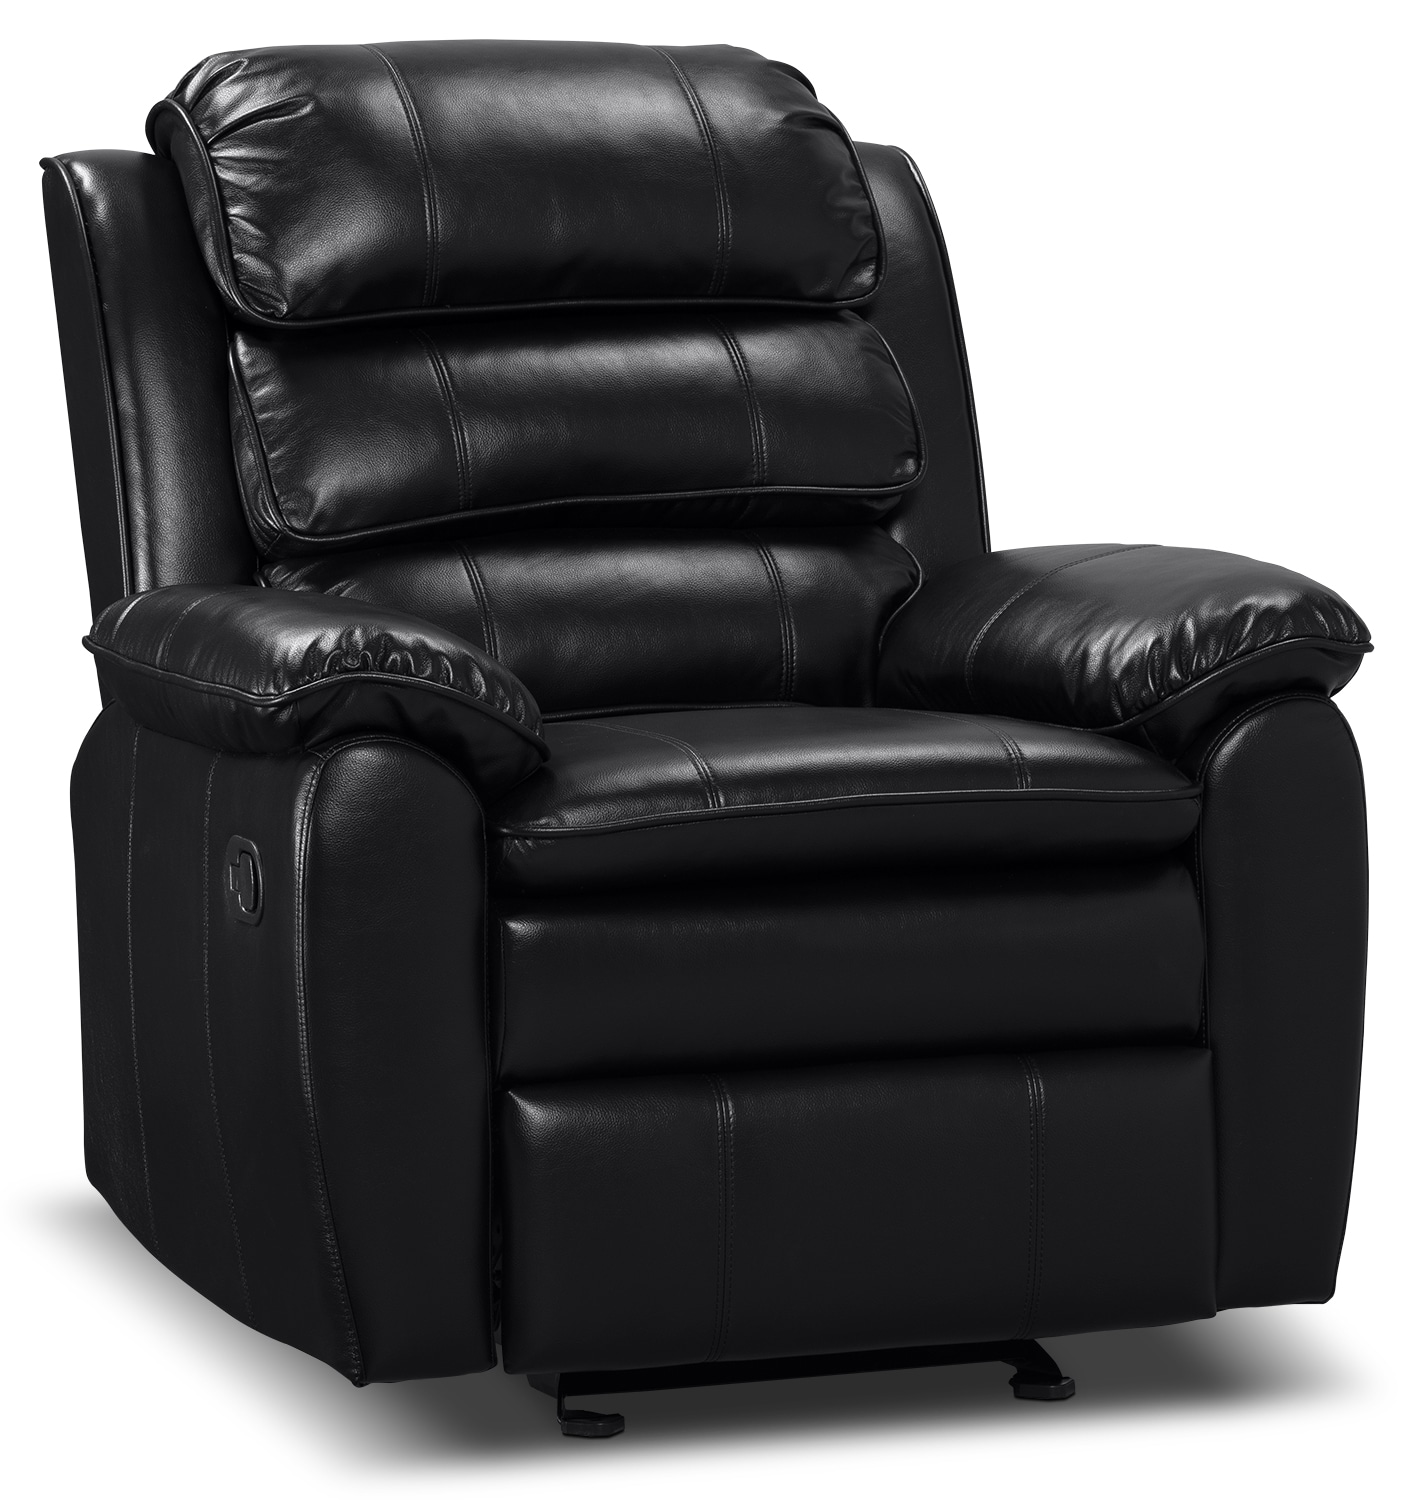 Adam Leather Look Fabric Reclining Glider Chair Black